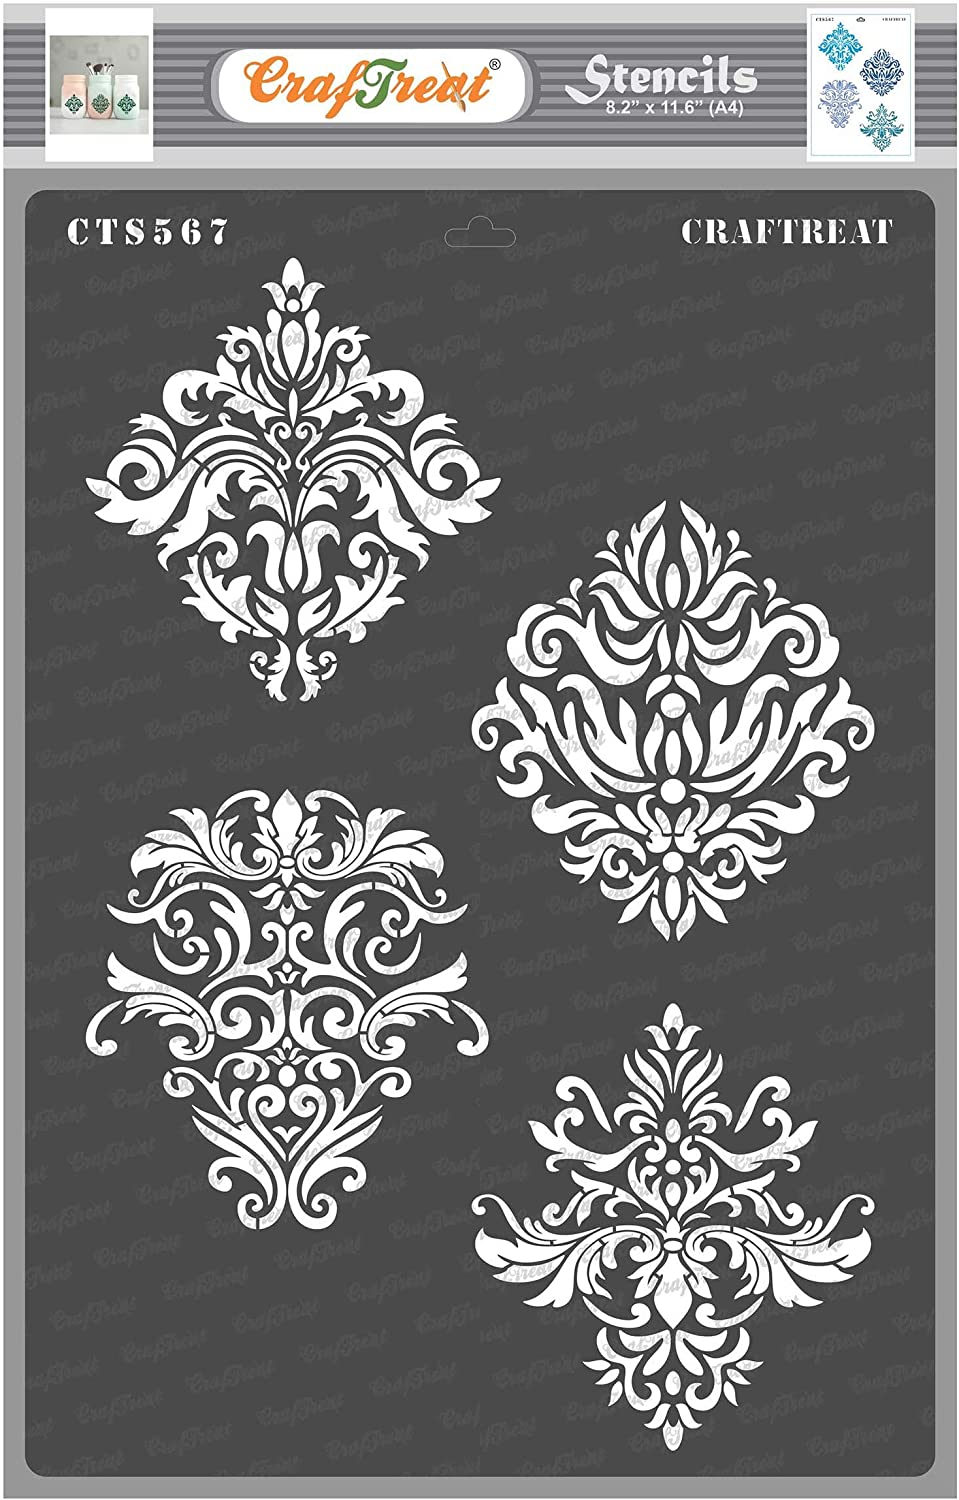 Ikat Damask Scrapbook and Printing on Paper CrafTreat Stencil Reusable Painting Template for Journal Wood 6x6 inches Fabric Home Decor Tile DIY Albums Crafting Floor Wall Notebook